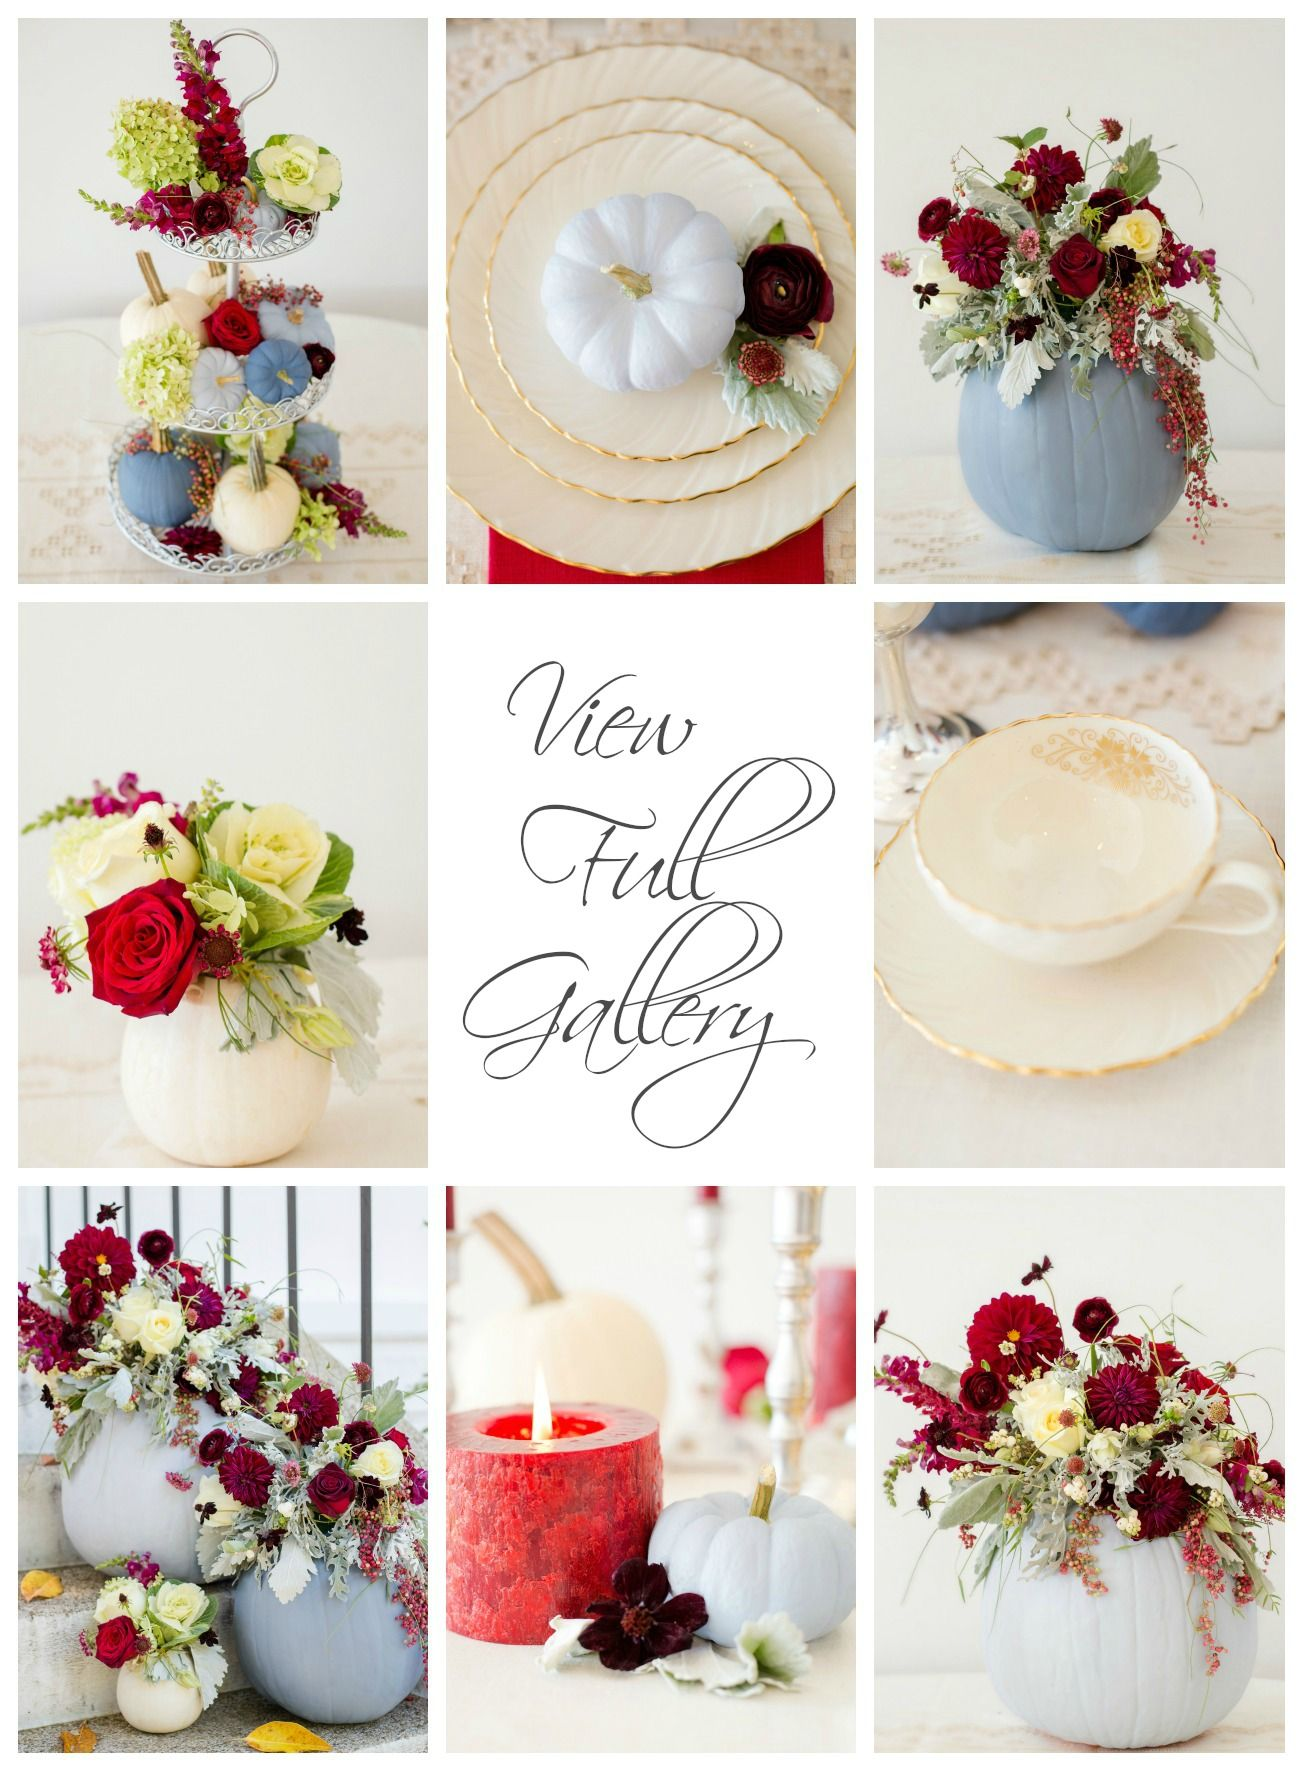 Dusty Blue and Cranberry Fall Tablescape. photo by Lisa Price Photography | Design by LB Floral and Haley at The Bride Link | Flowers by LB Floral